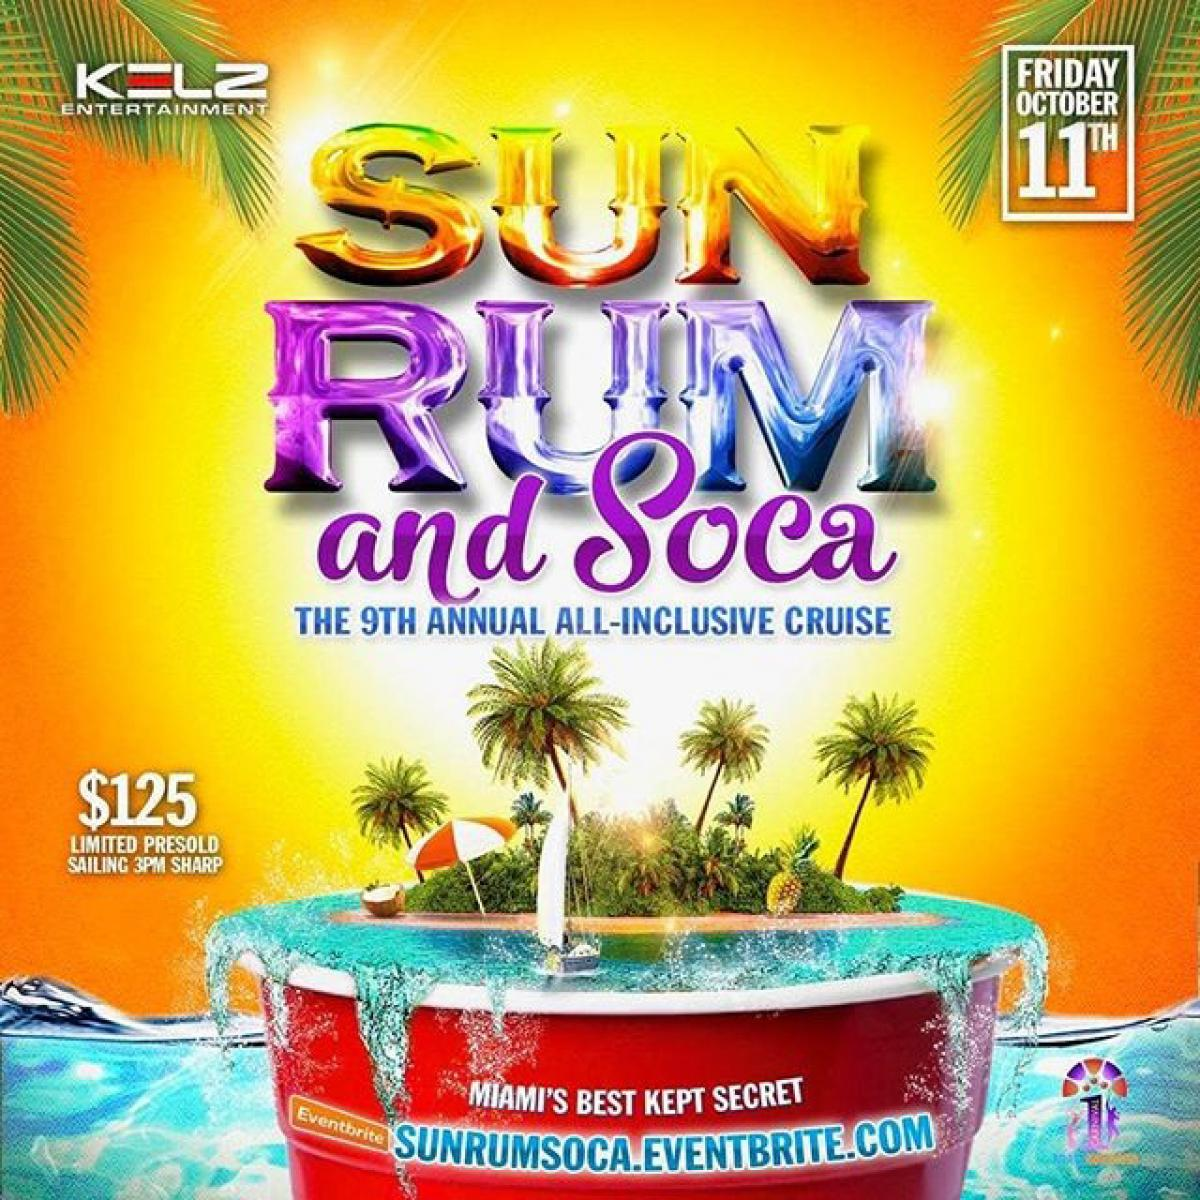 Sun Rum and Soca Cruise flyer or graphic.